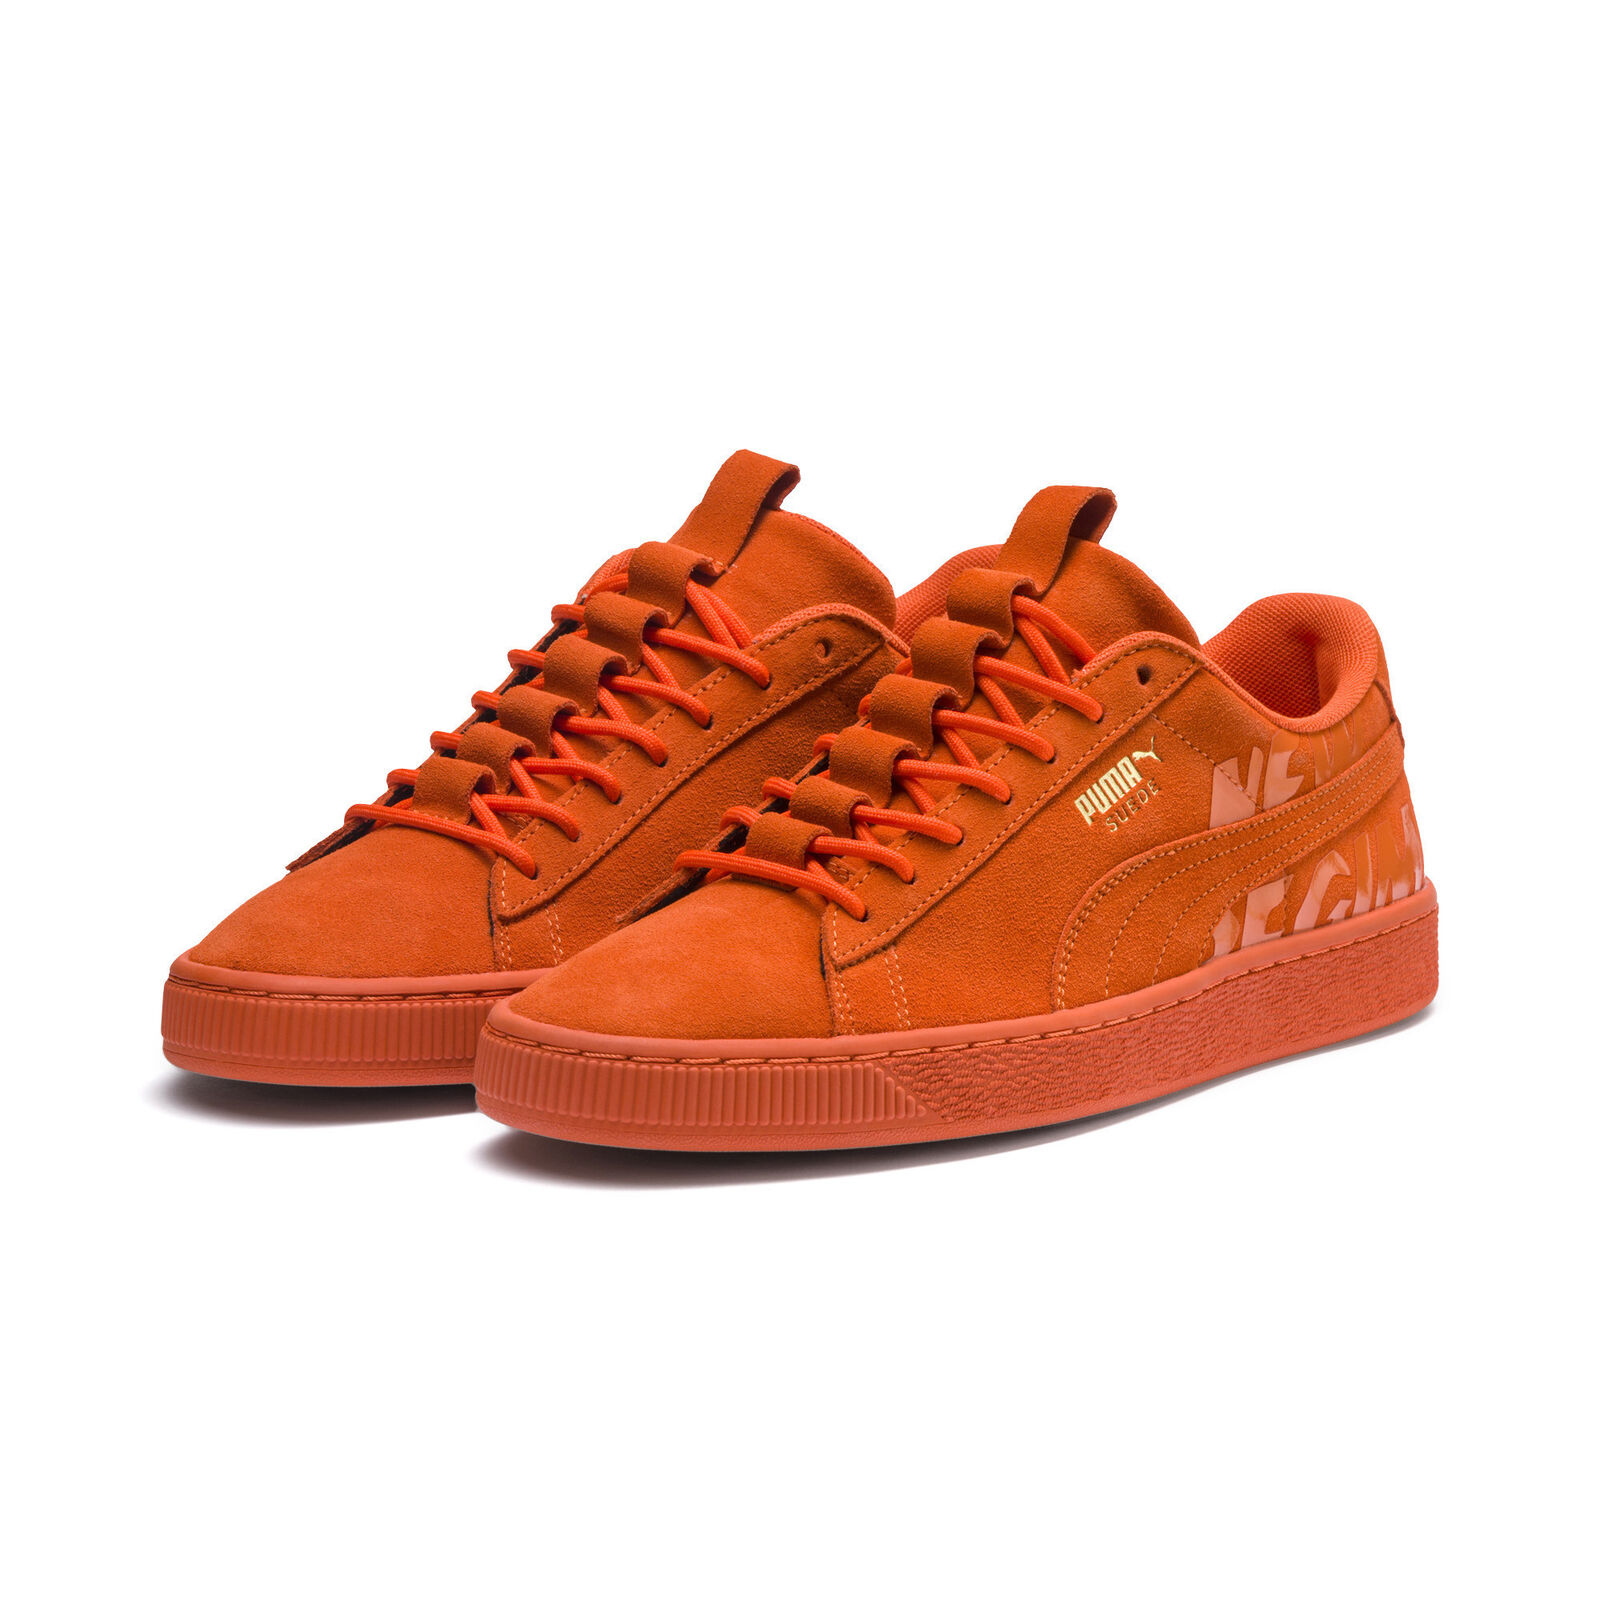 Men's Puma Suede Atelier New Regime orange shoes (366534-01)